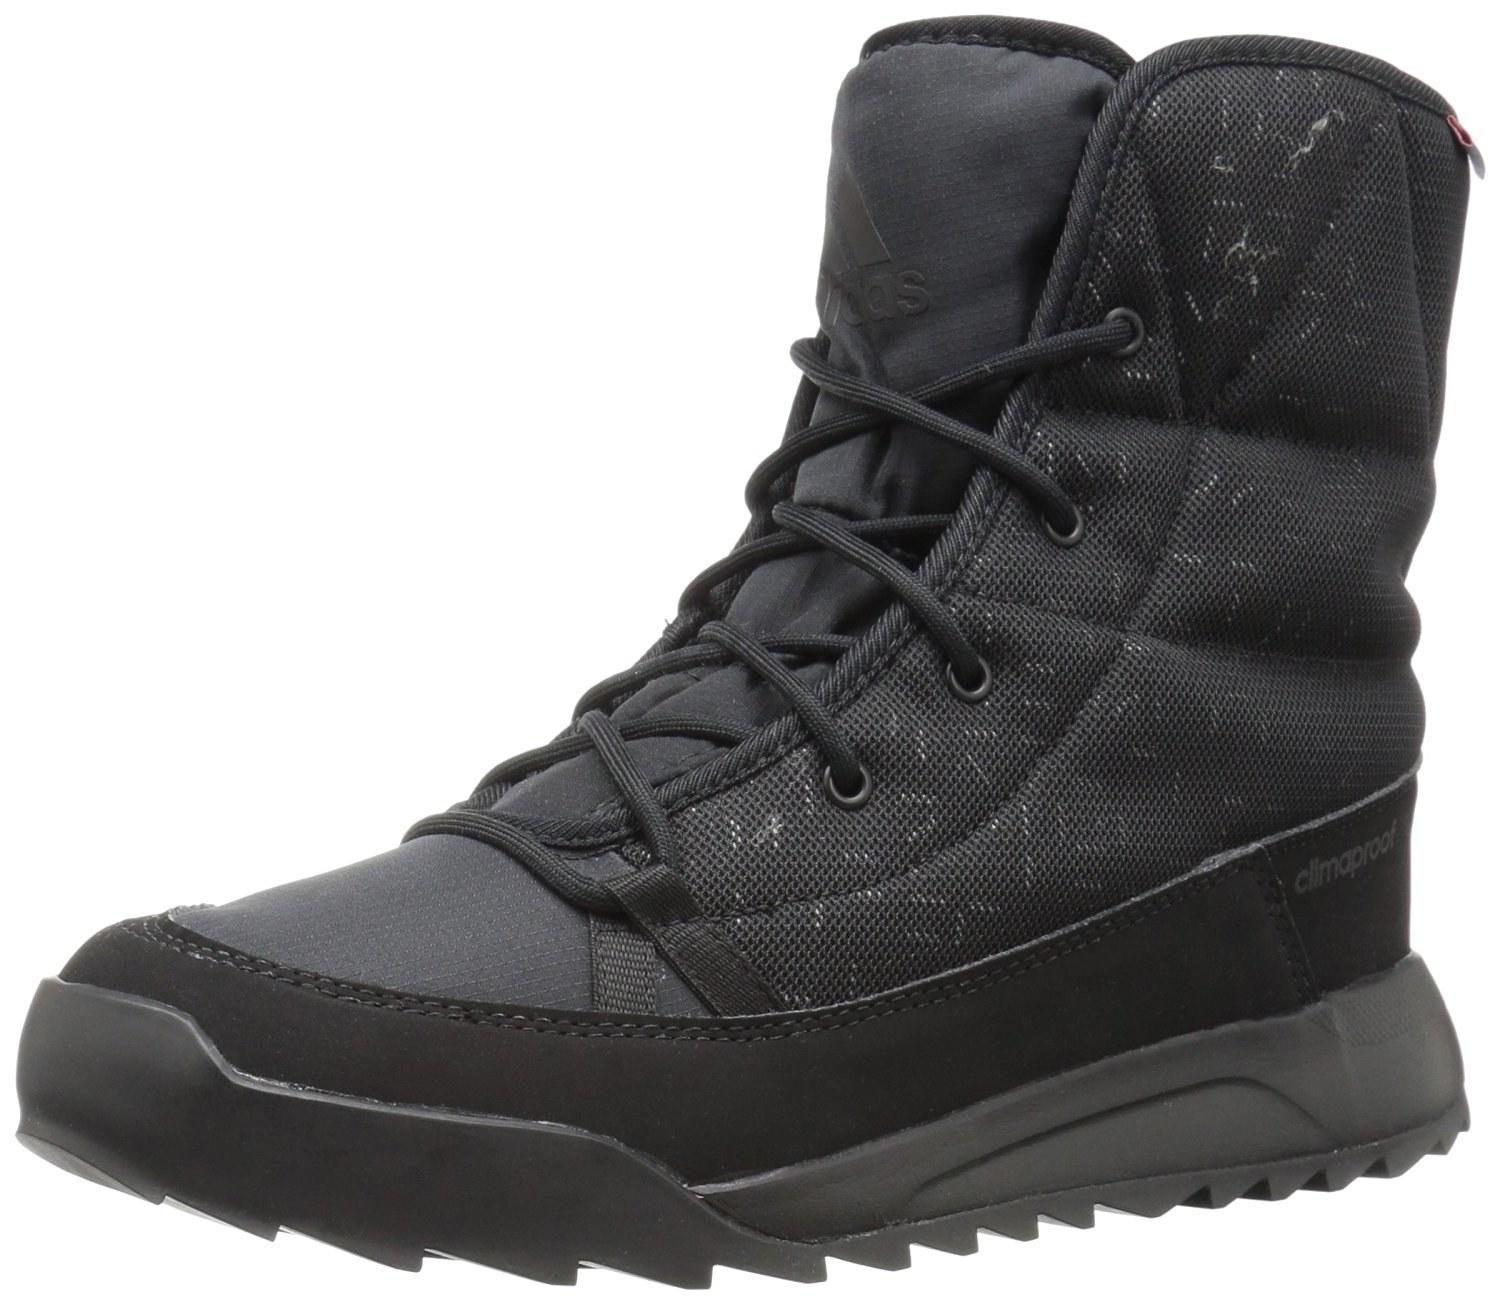 097a8faa9ea 21 Of The Best Winter Boots And Snow Boots You Can Get On Amazon